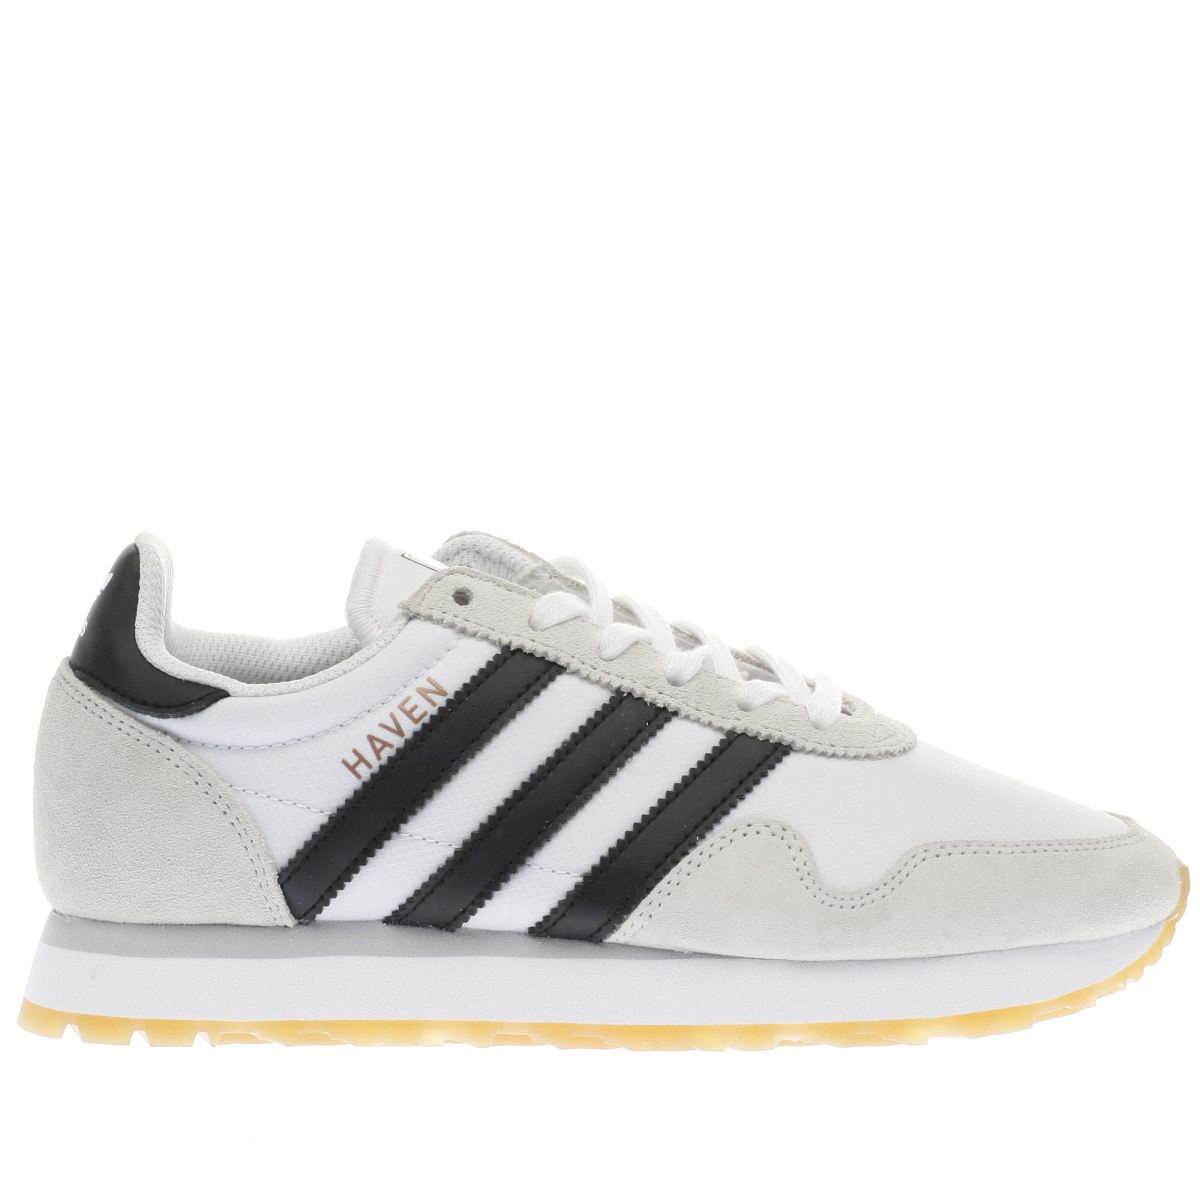 adidas white & black haven Youth Trainers